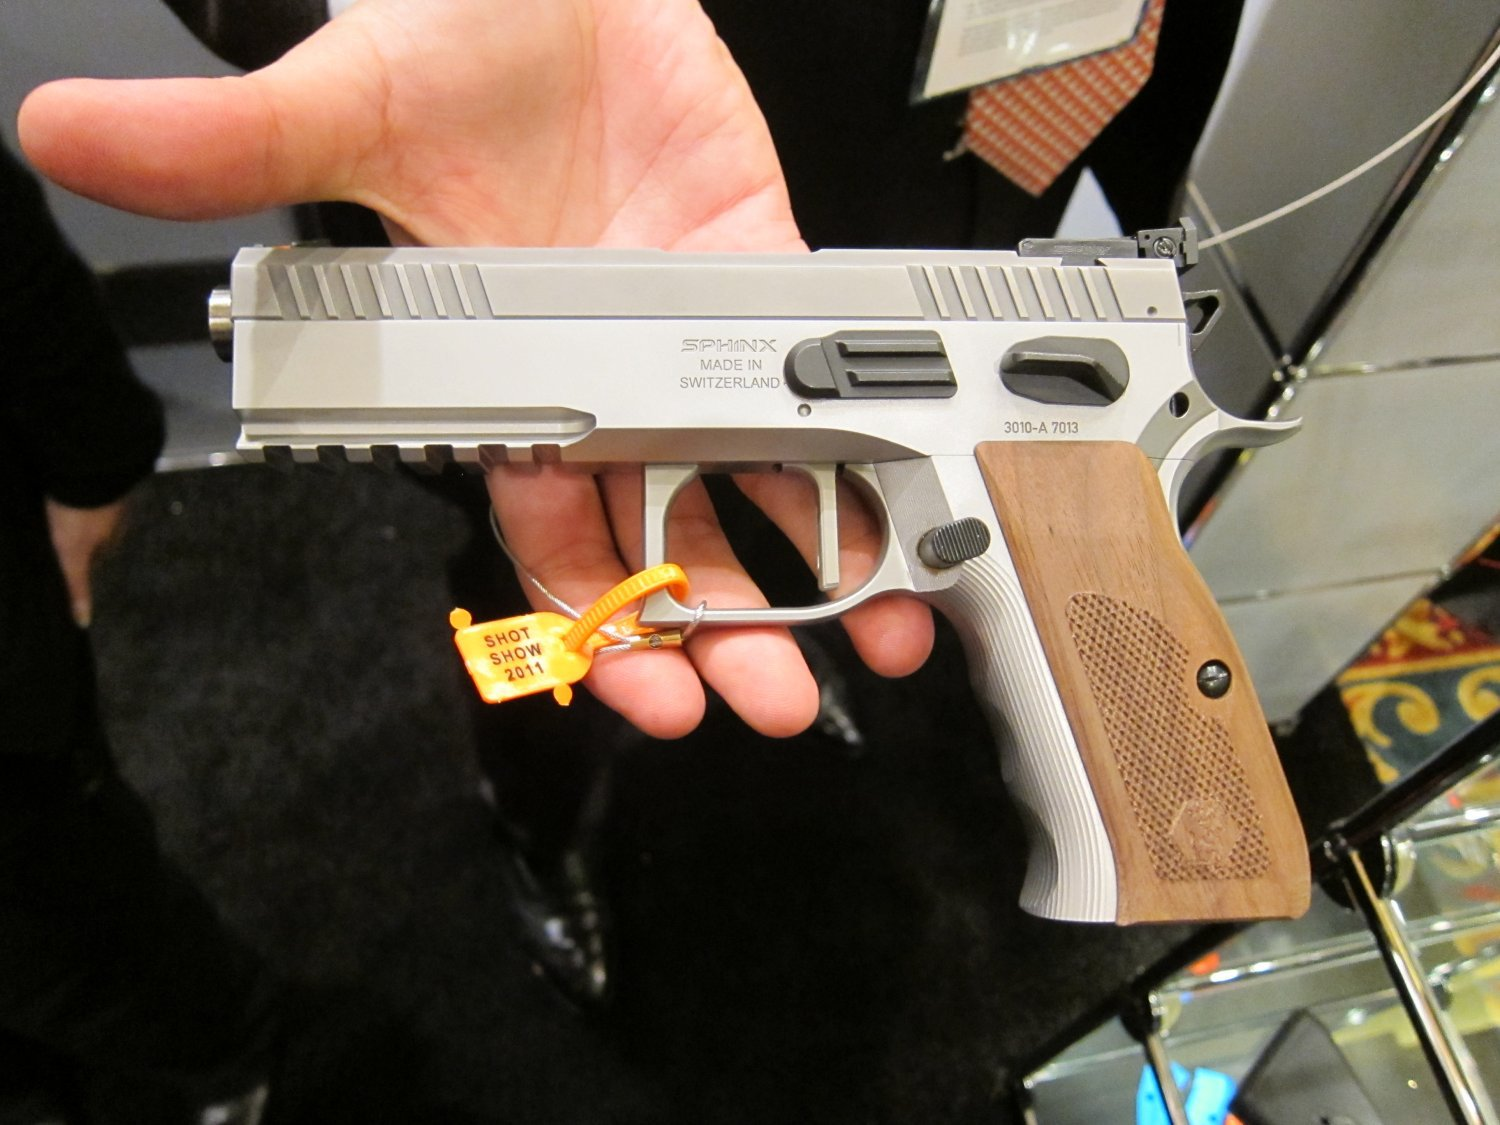 KRISS Sphinx Tactical Pistols 11 <!  :en  >KRISS Sphinx Tactical Pistols and DEFIANCE Silencer/Sound Suppressors at SHOT Show 2011: High End Swiss Tactical Pistols for Military Special Operations, Law Enforcement SWAT Ops, and Competitive Shooting<!  :  >